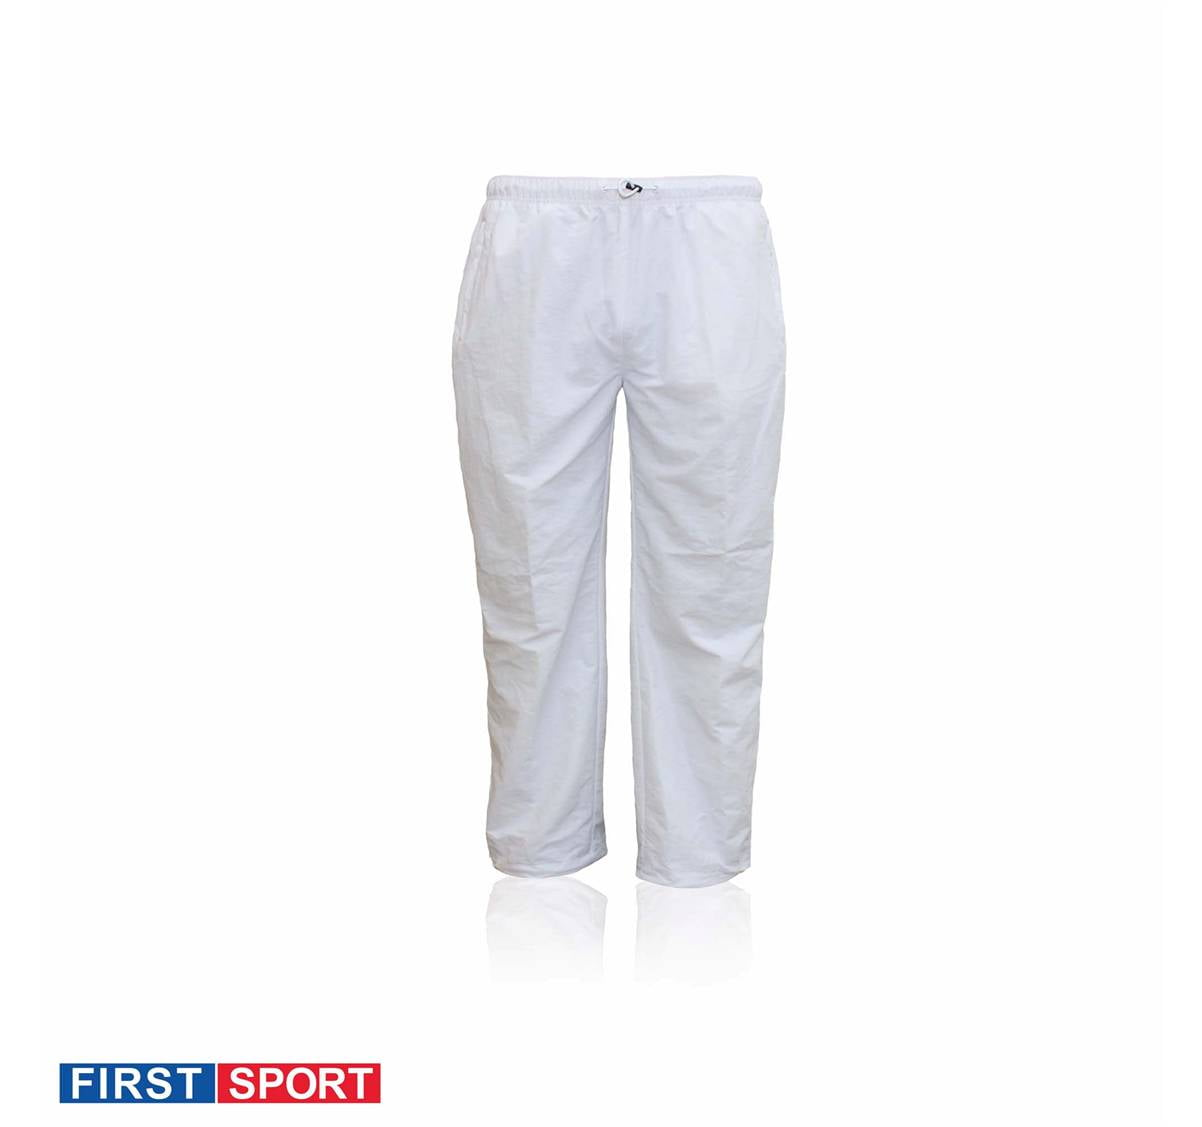 First Sport Taslon Track Pants White Fs9674 Sports